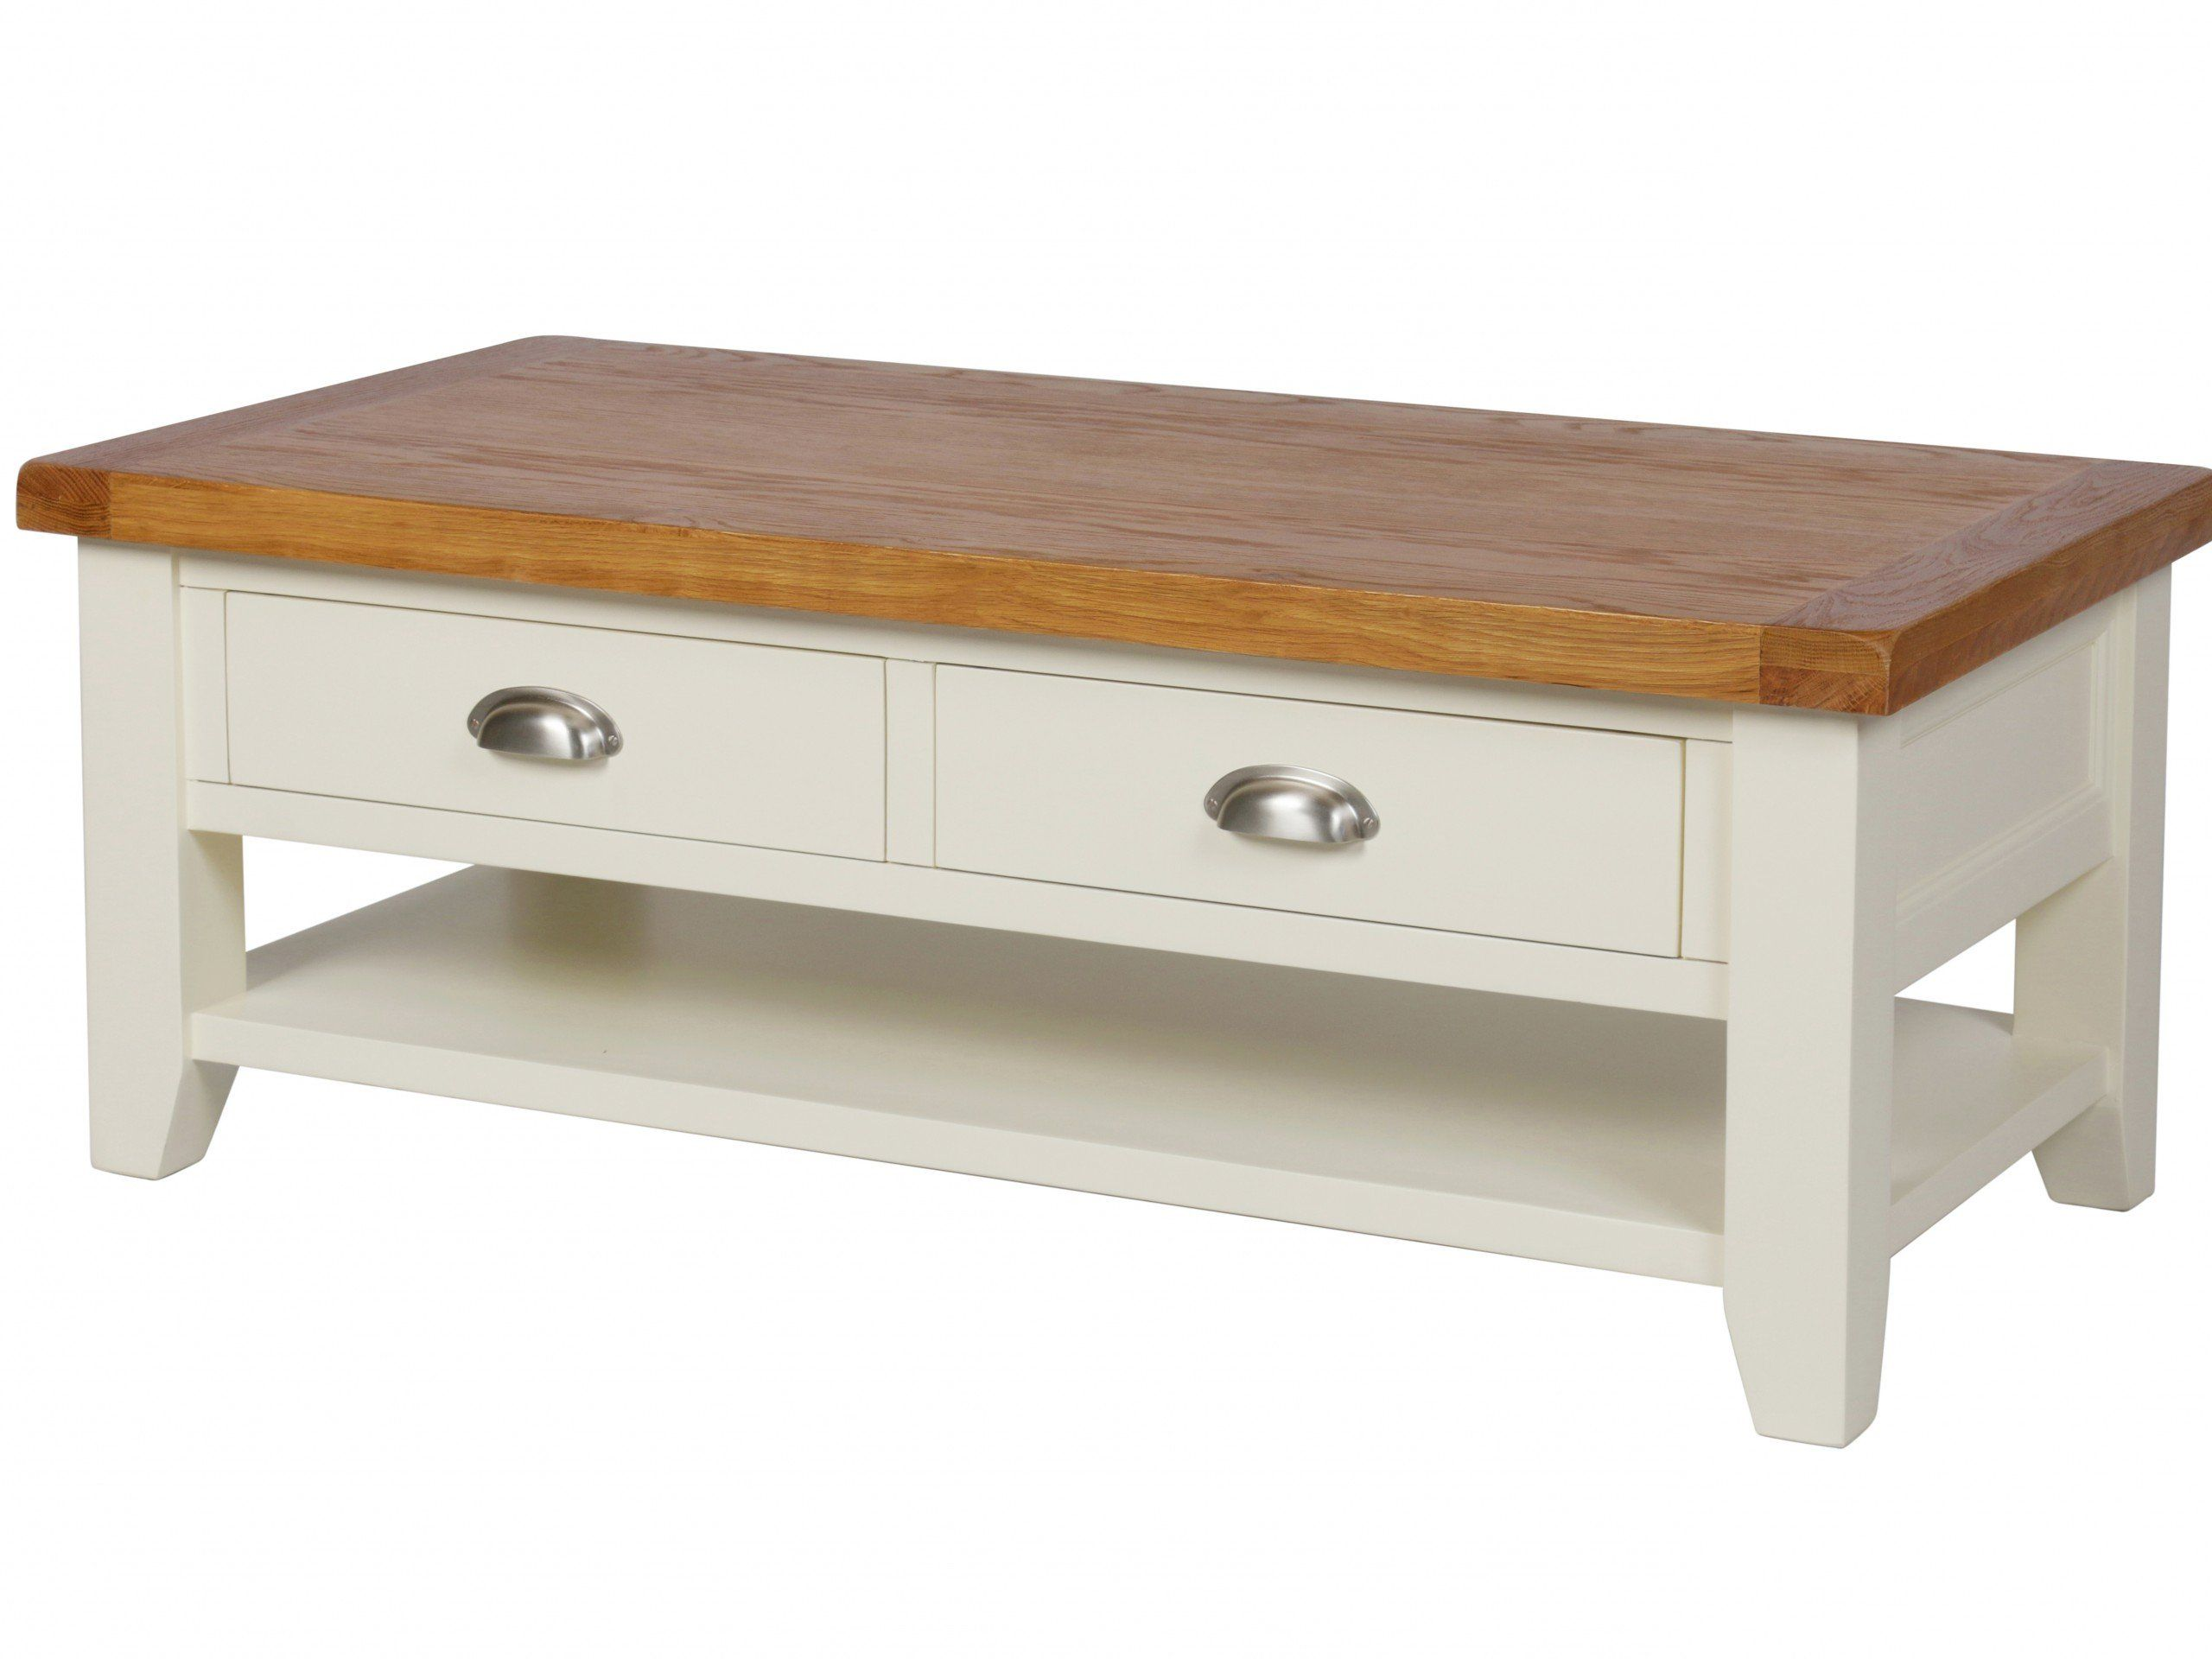 The stunning cream painted Country Cottage Oak 4 Drawer